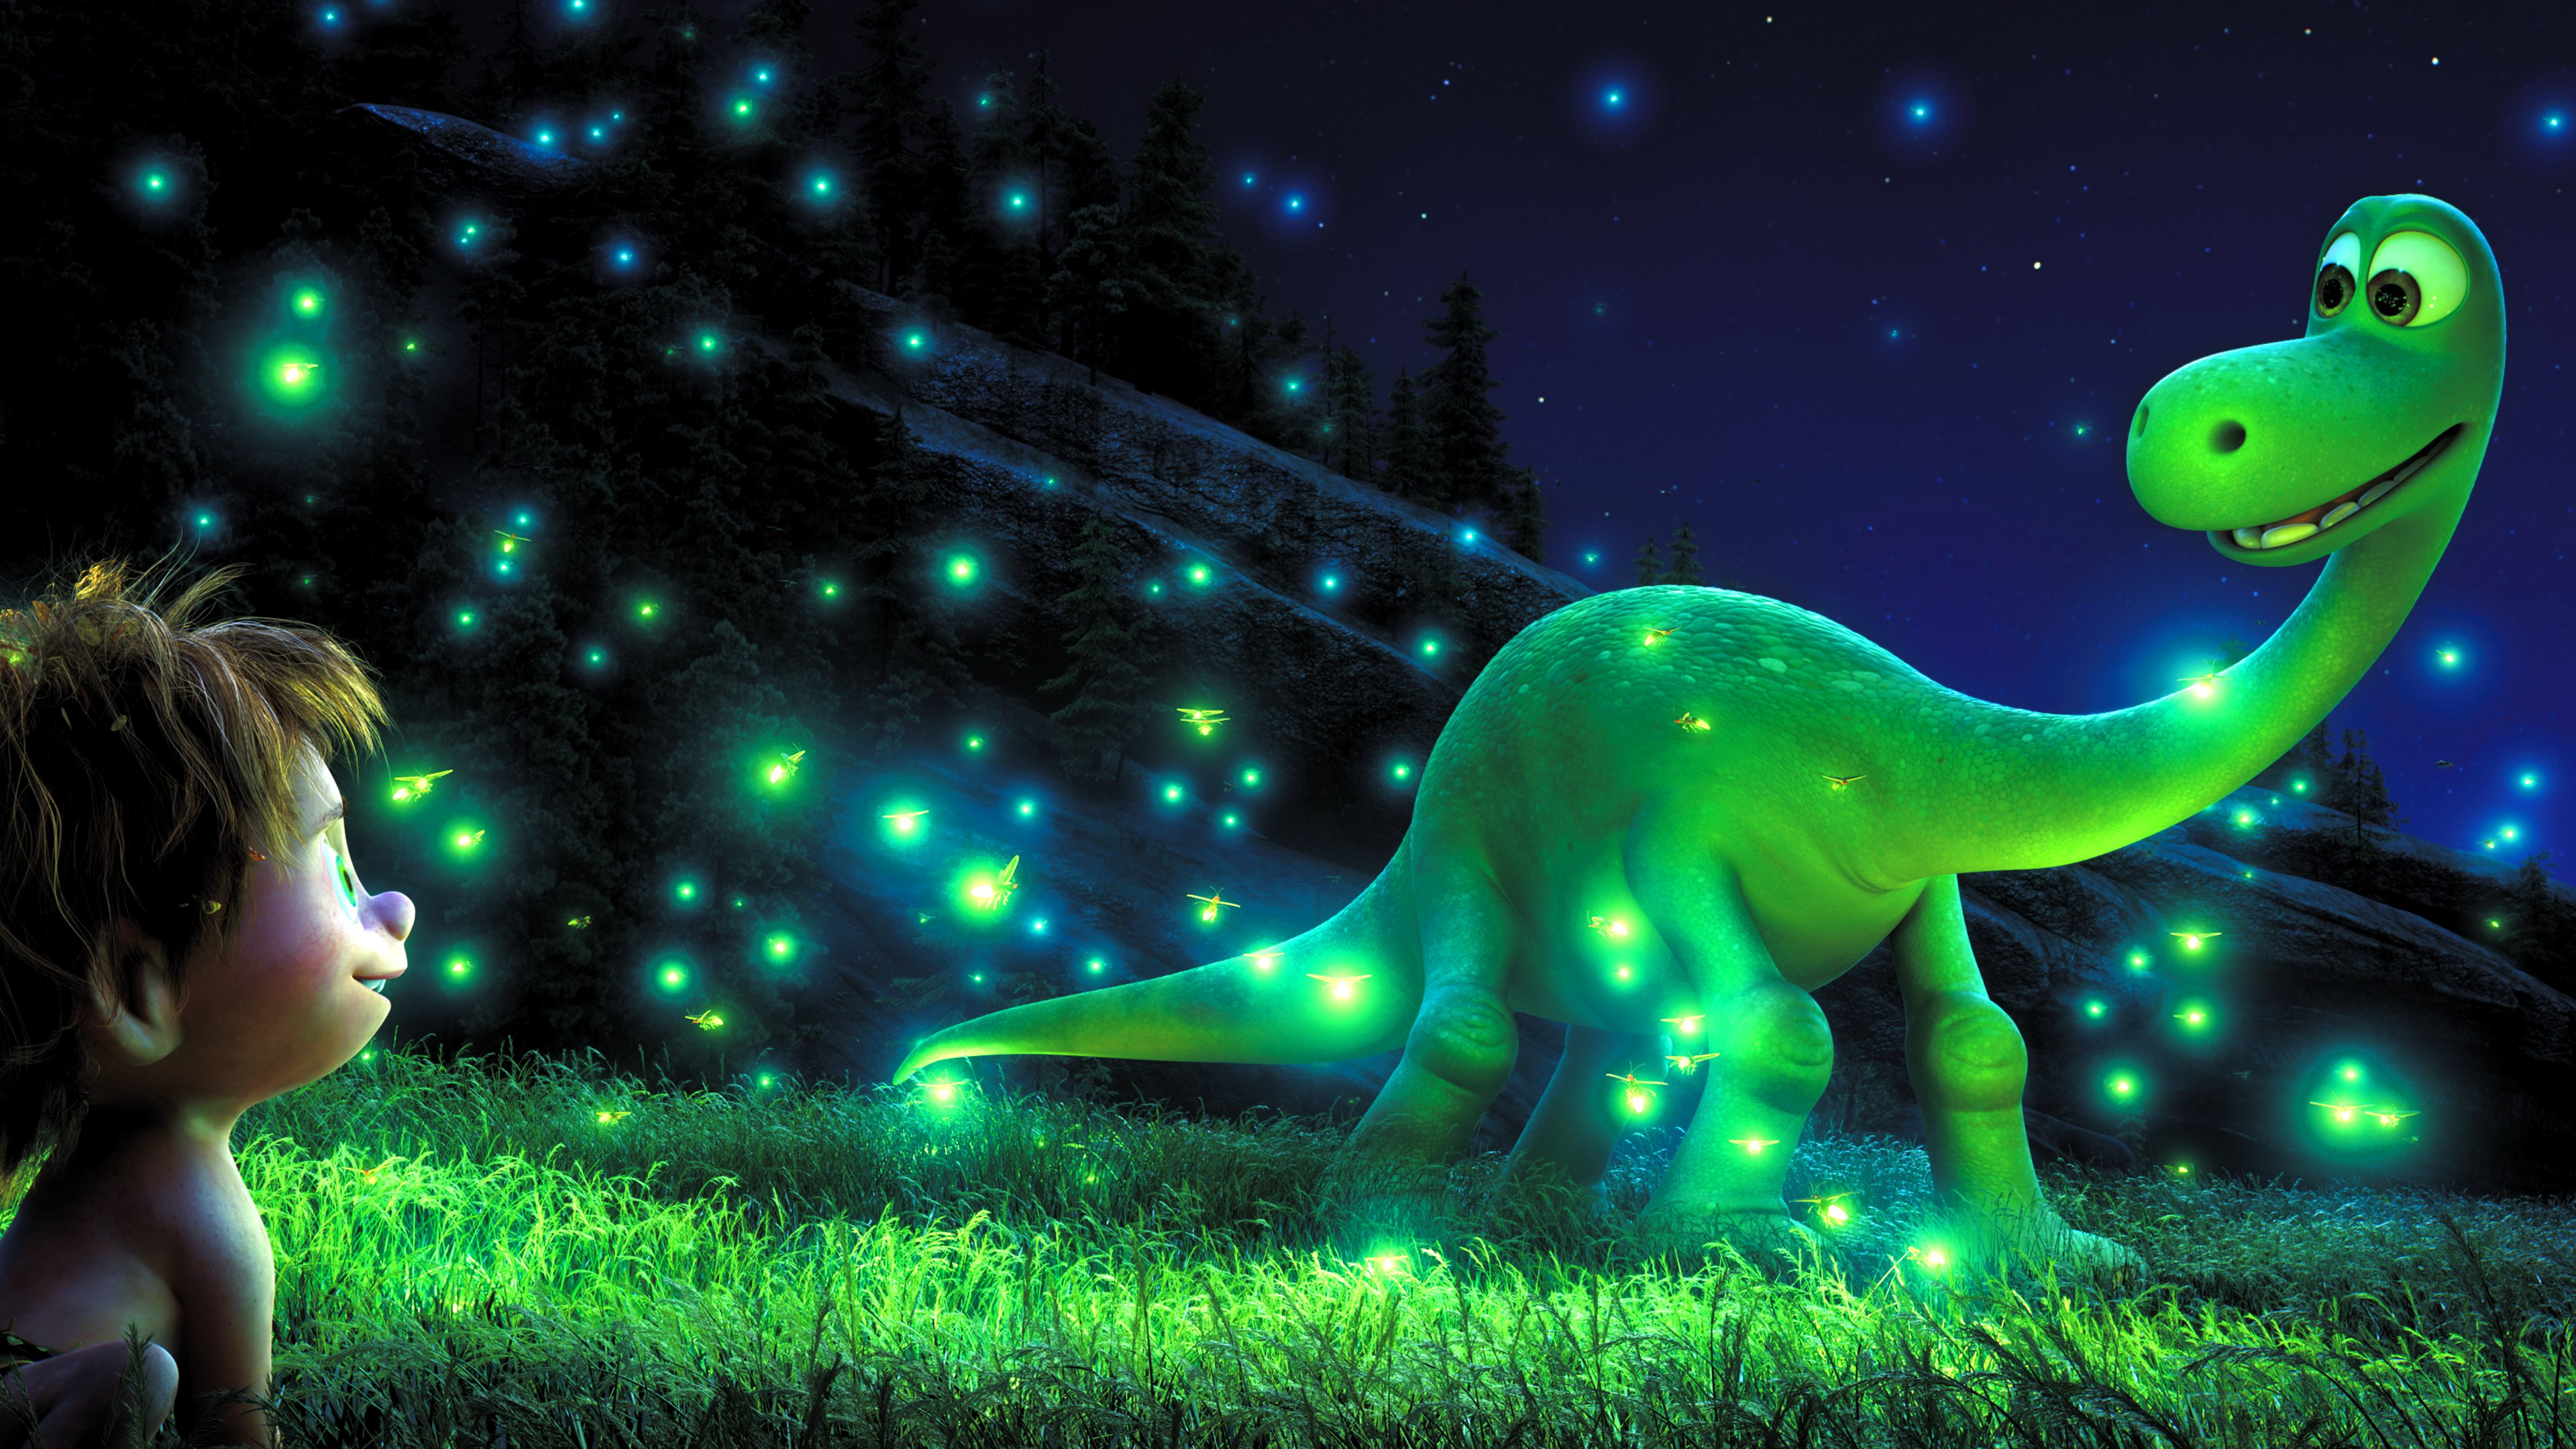 15 The Good Dinosaur HD Wallpapers | Backgrounds - Wallpaper Abyss